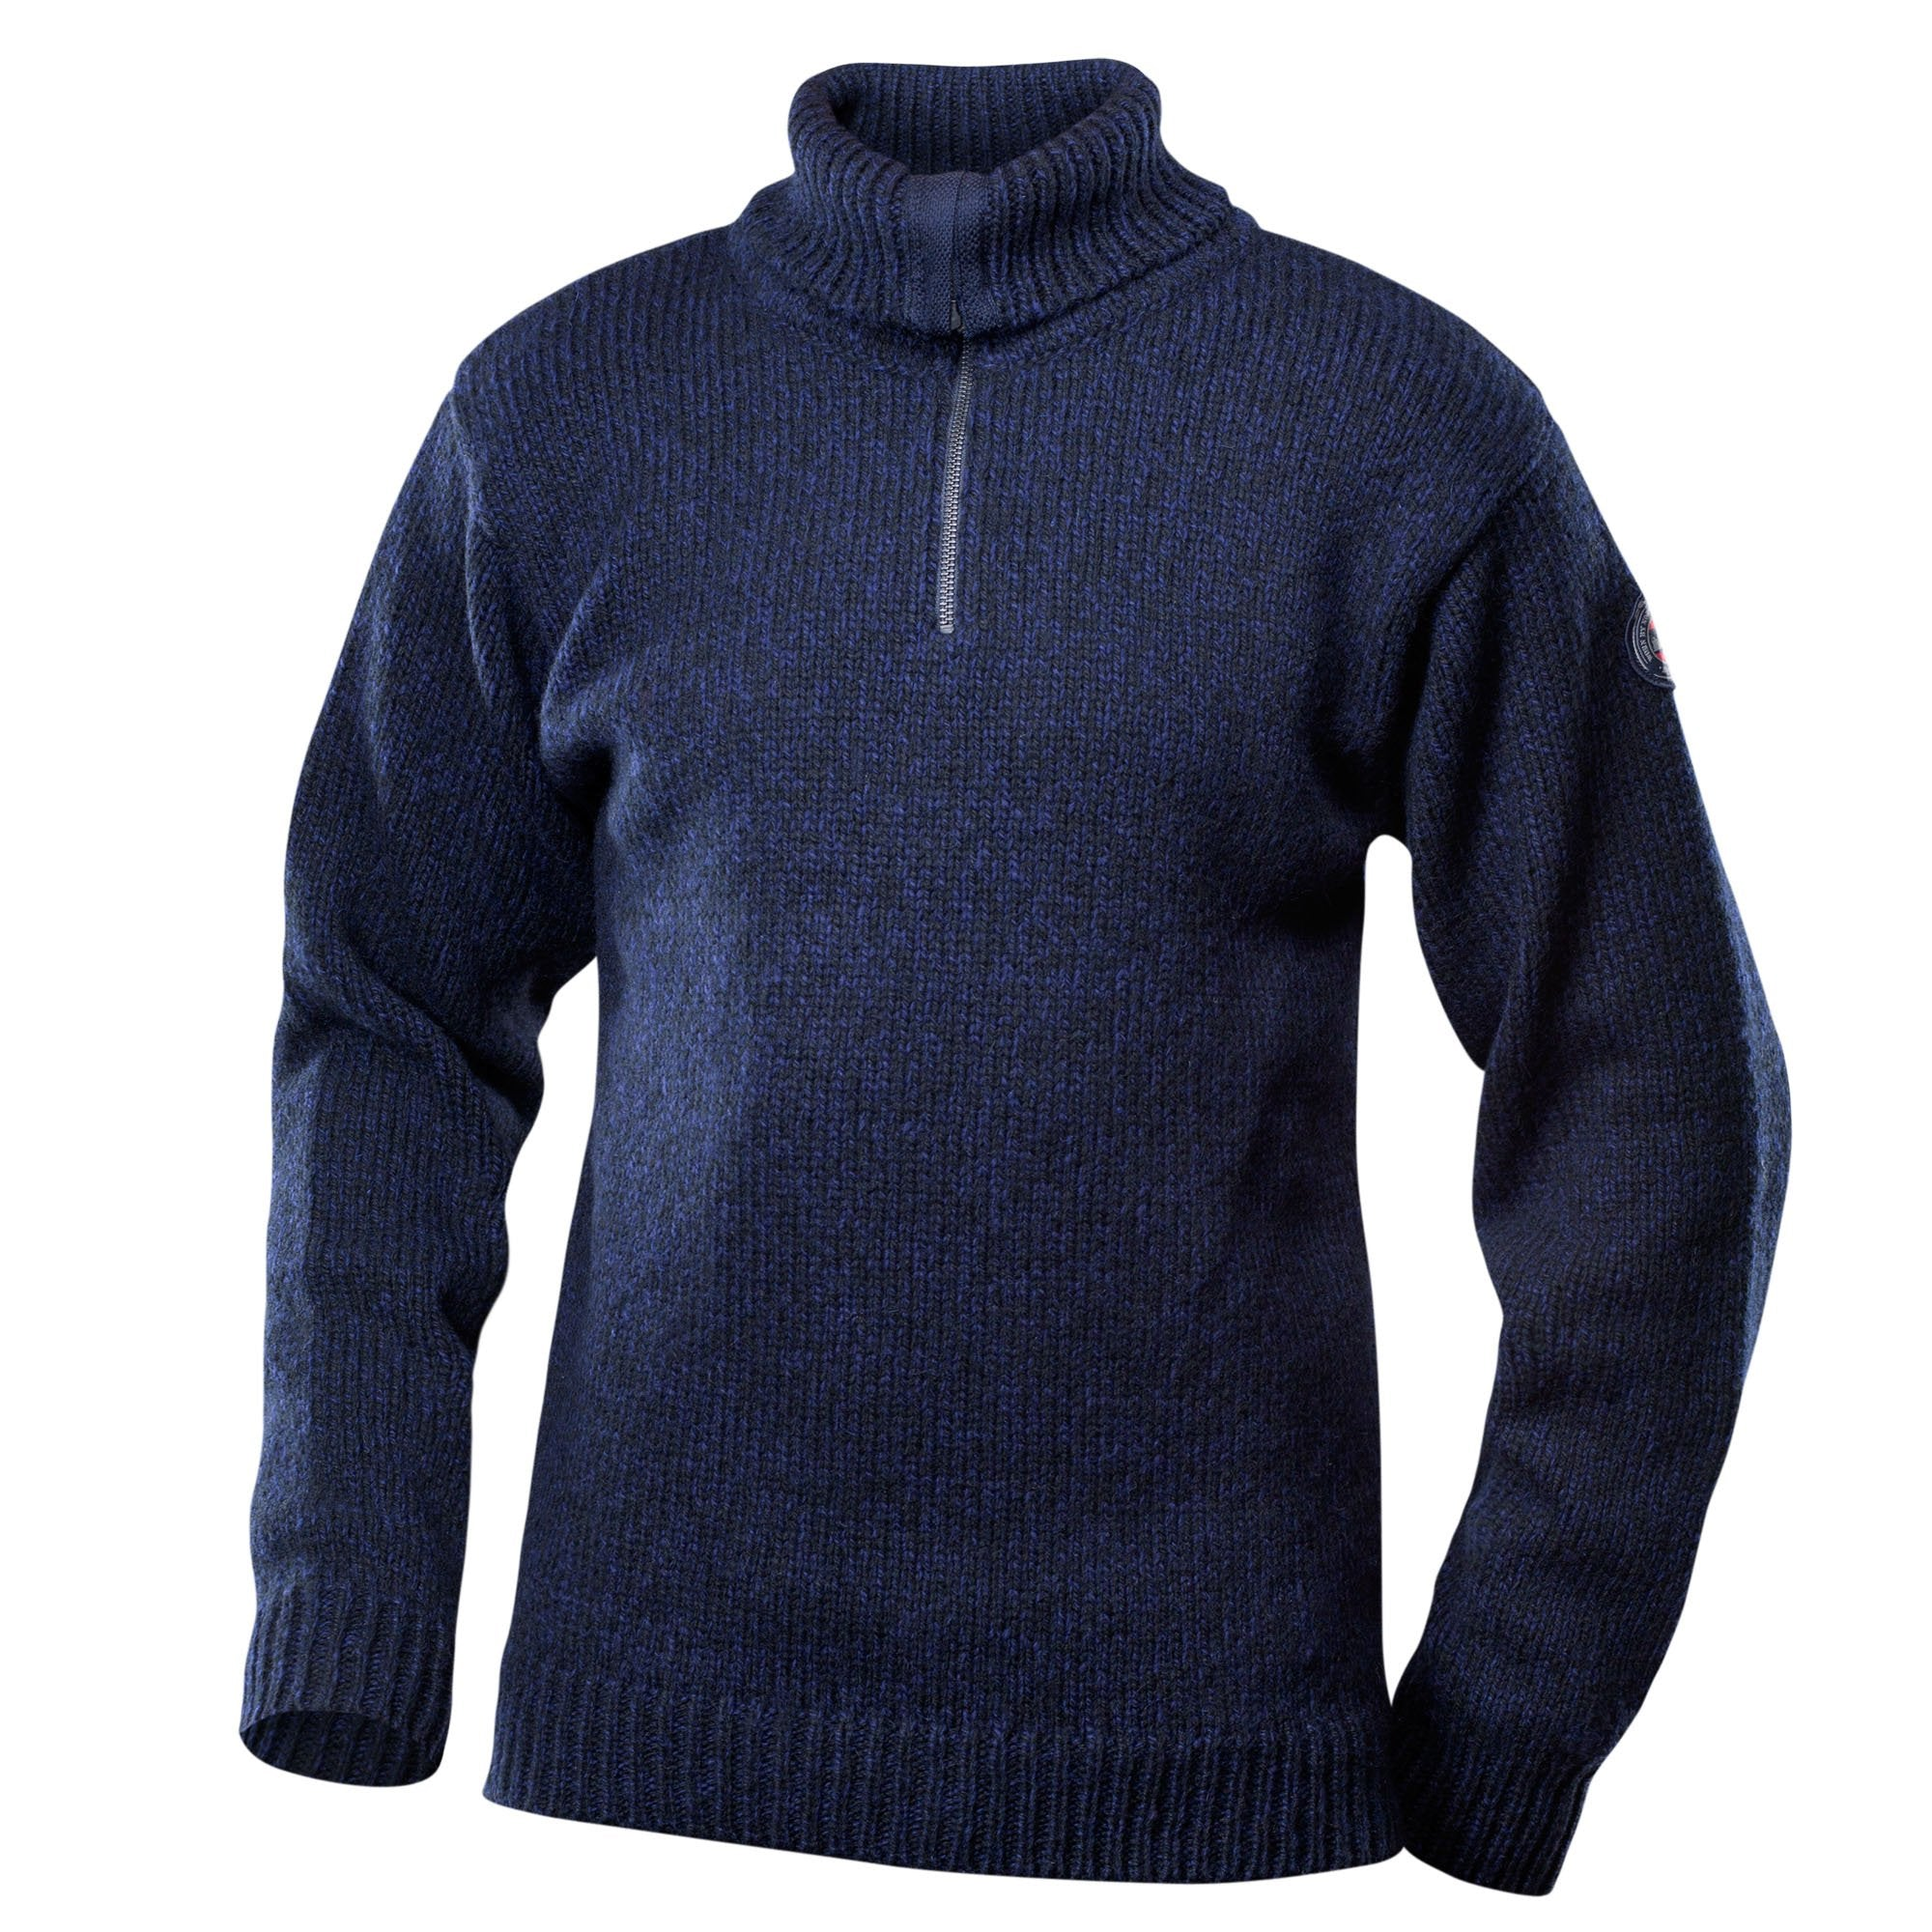 Devold Nansen Zip Neck Sweater - Arthur Beale